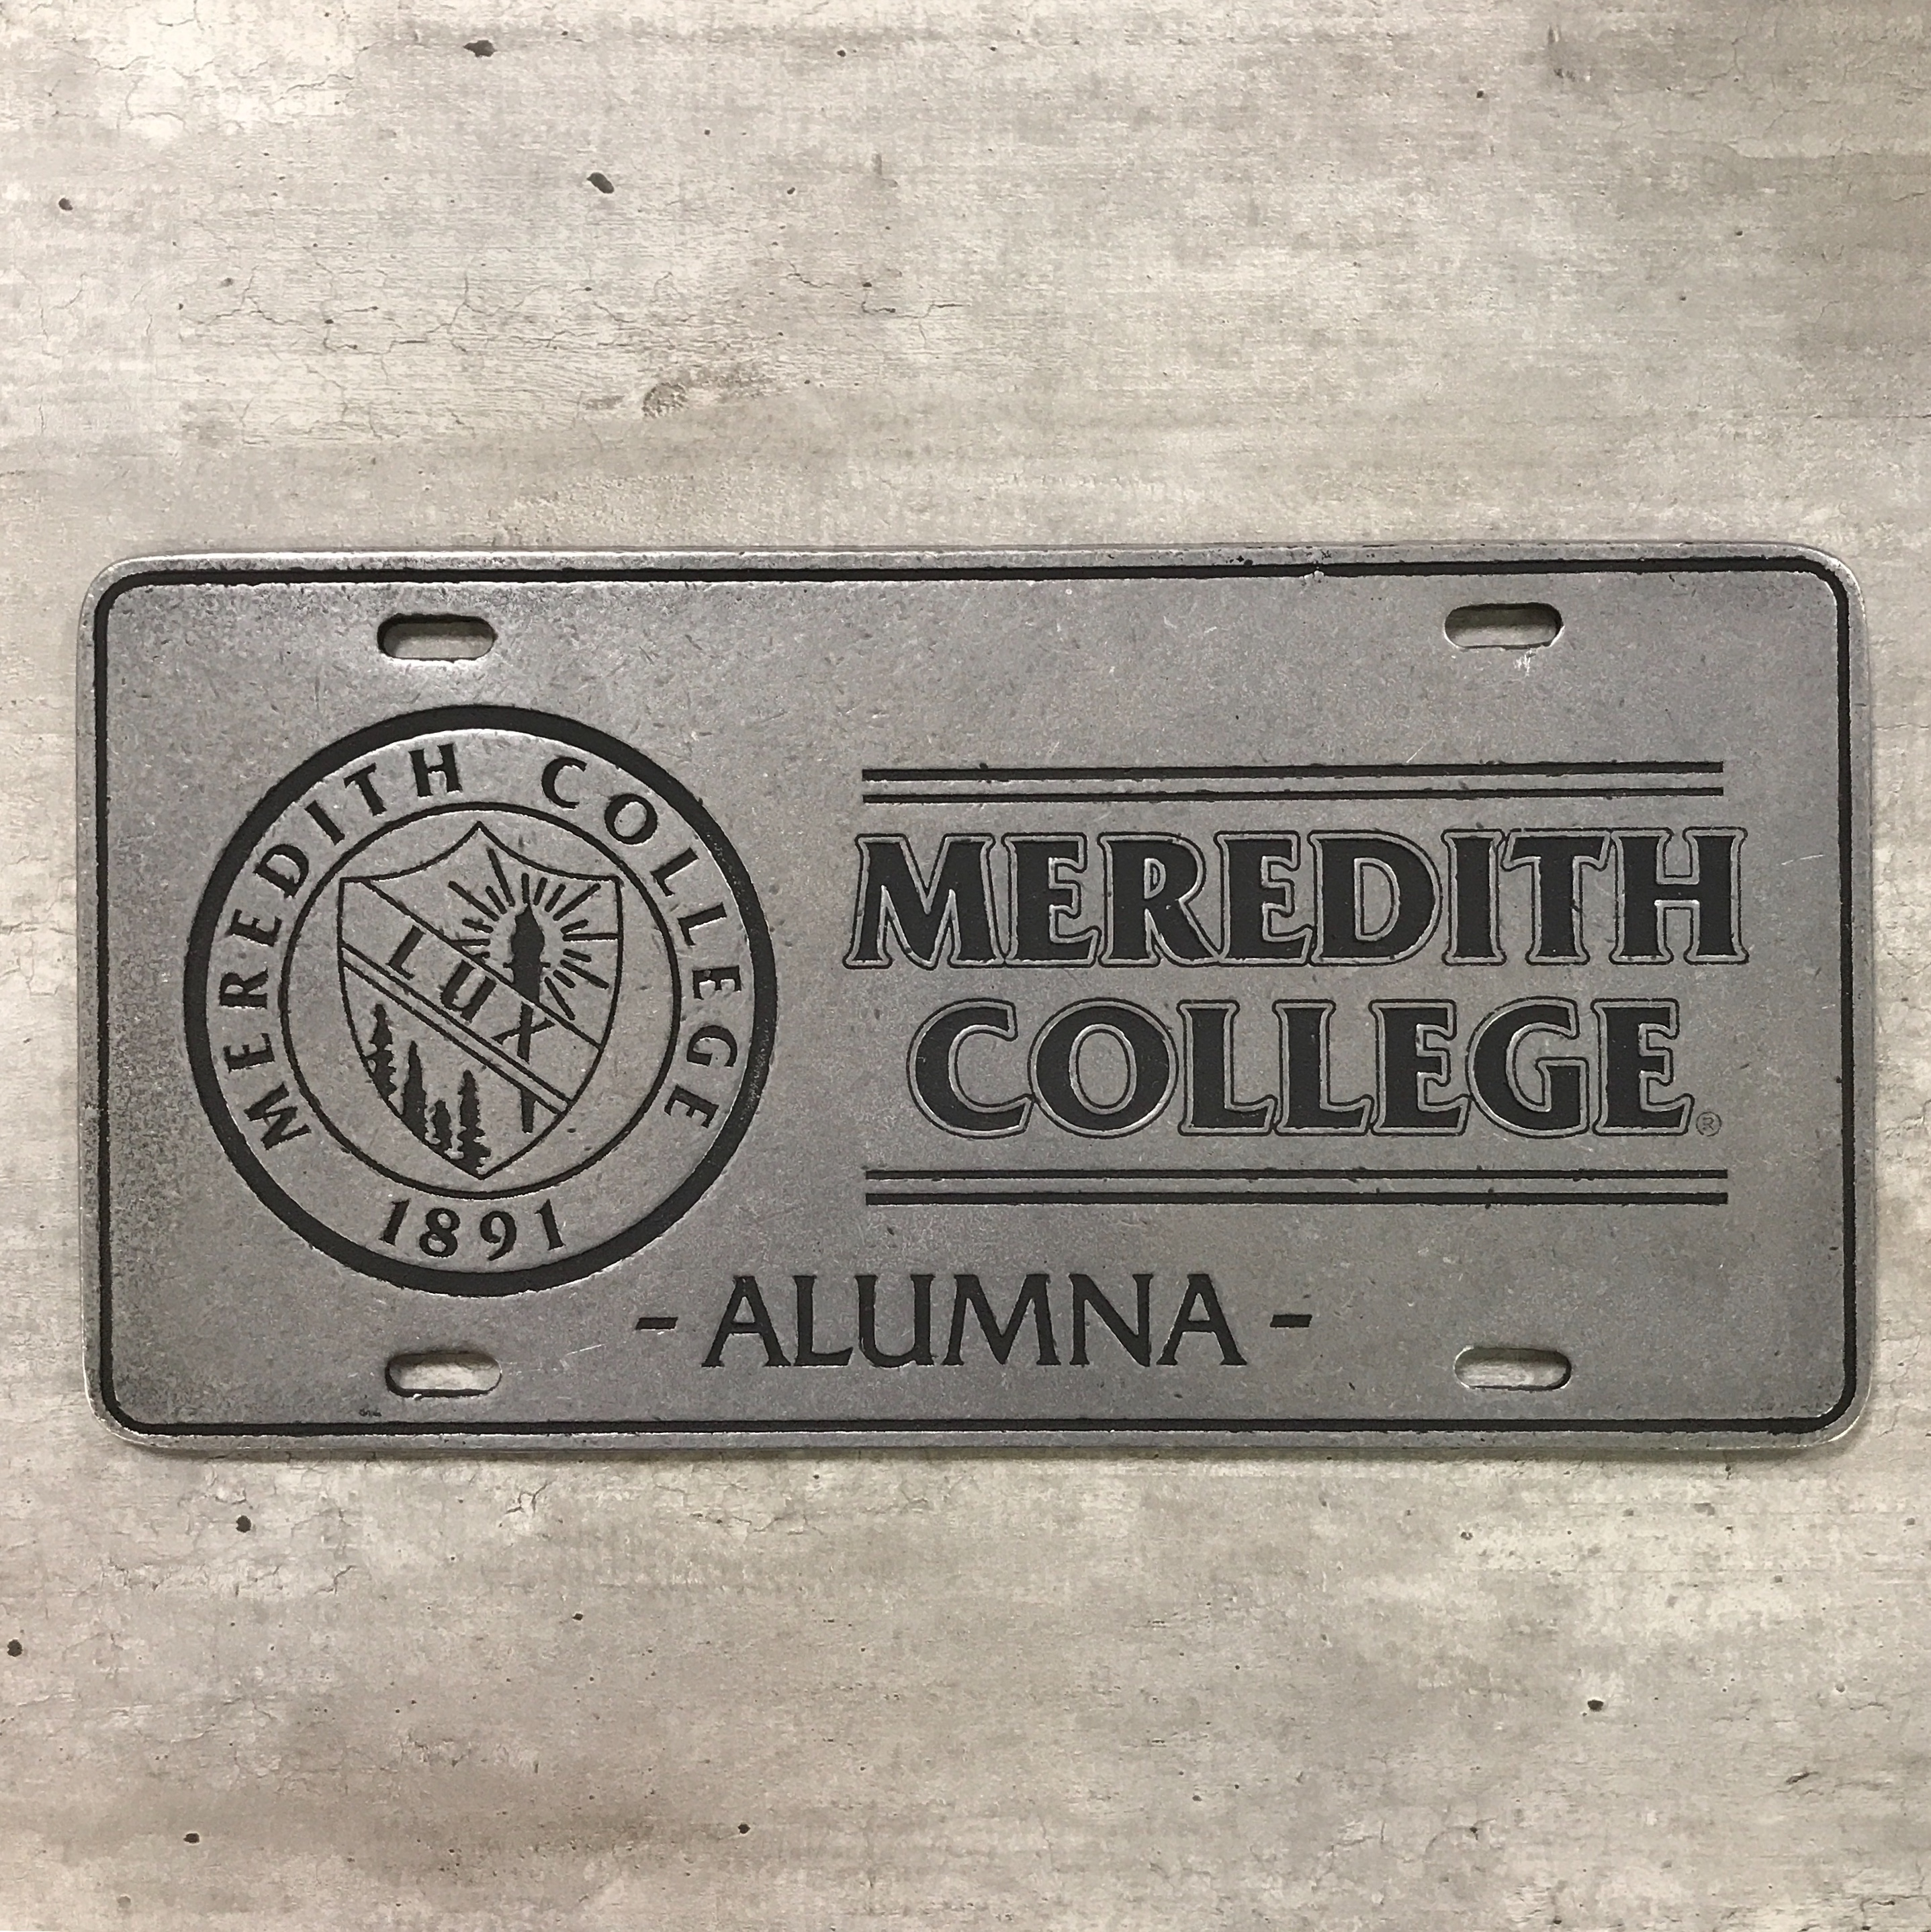 Image for the License Plate, Meredith College Alumna + Seal, Metal product